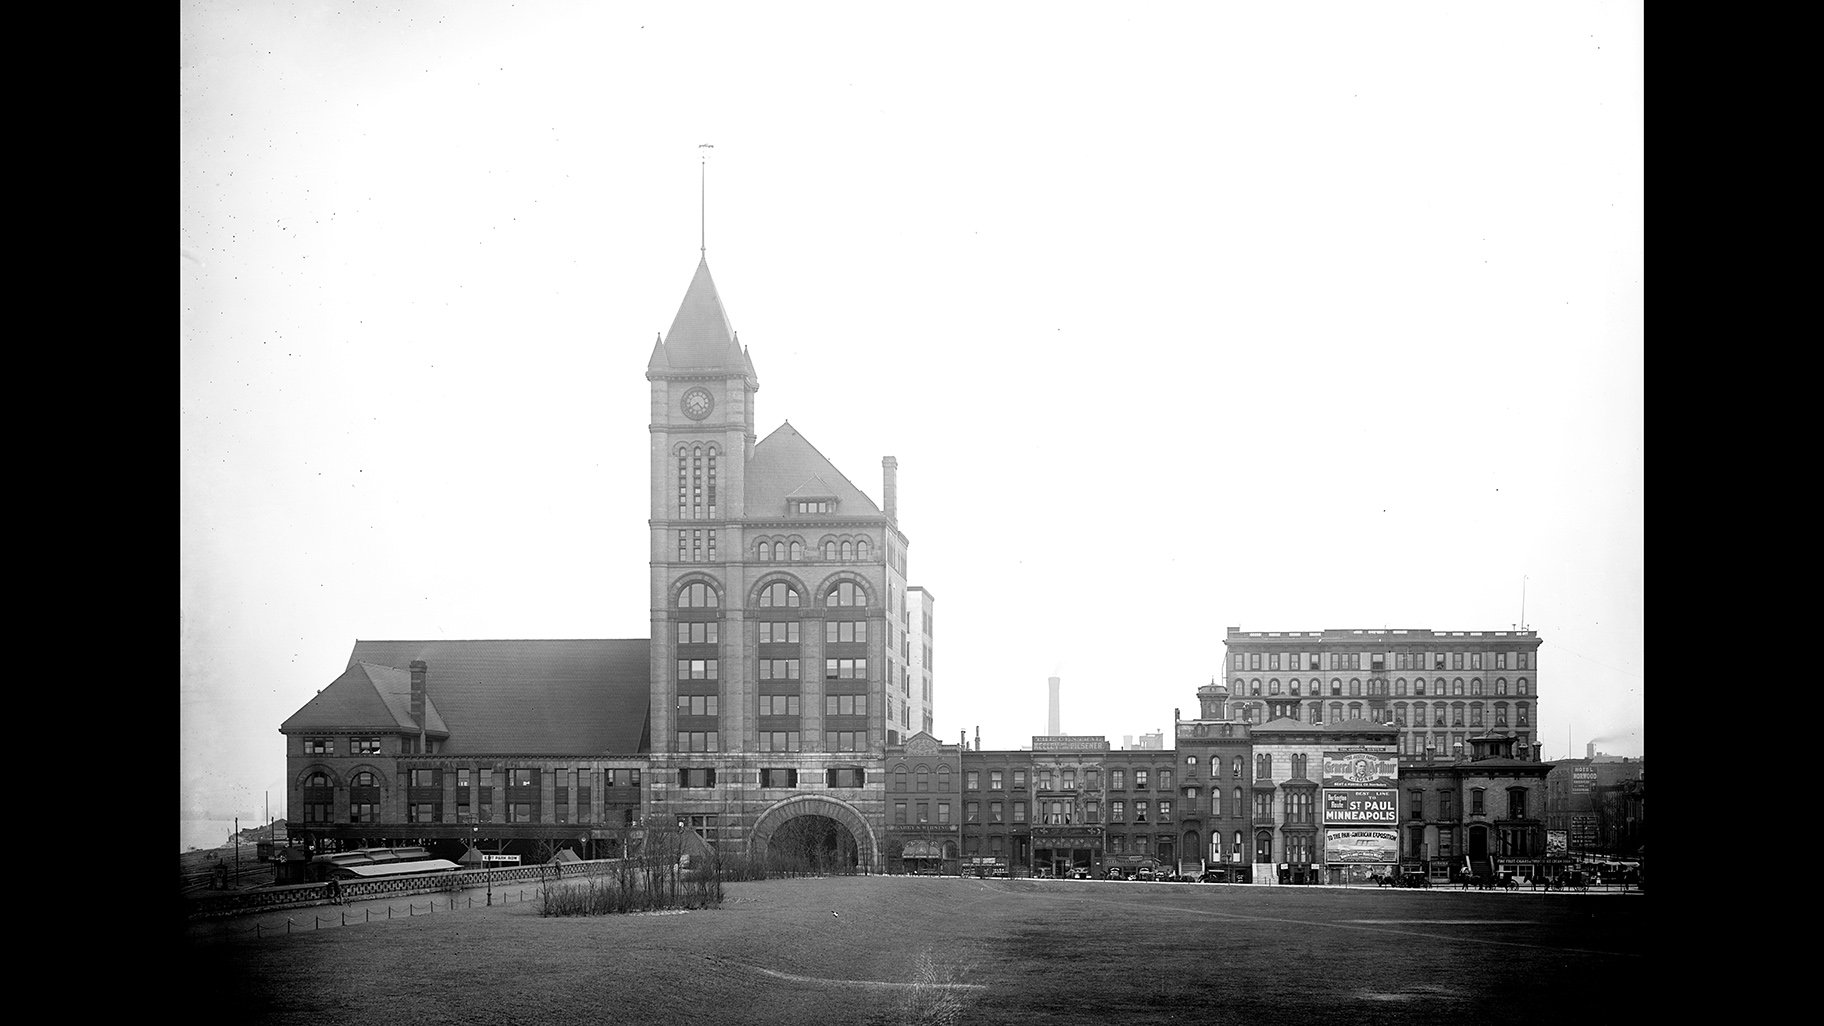 Illinois Central Station 1893-1972